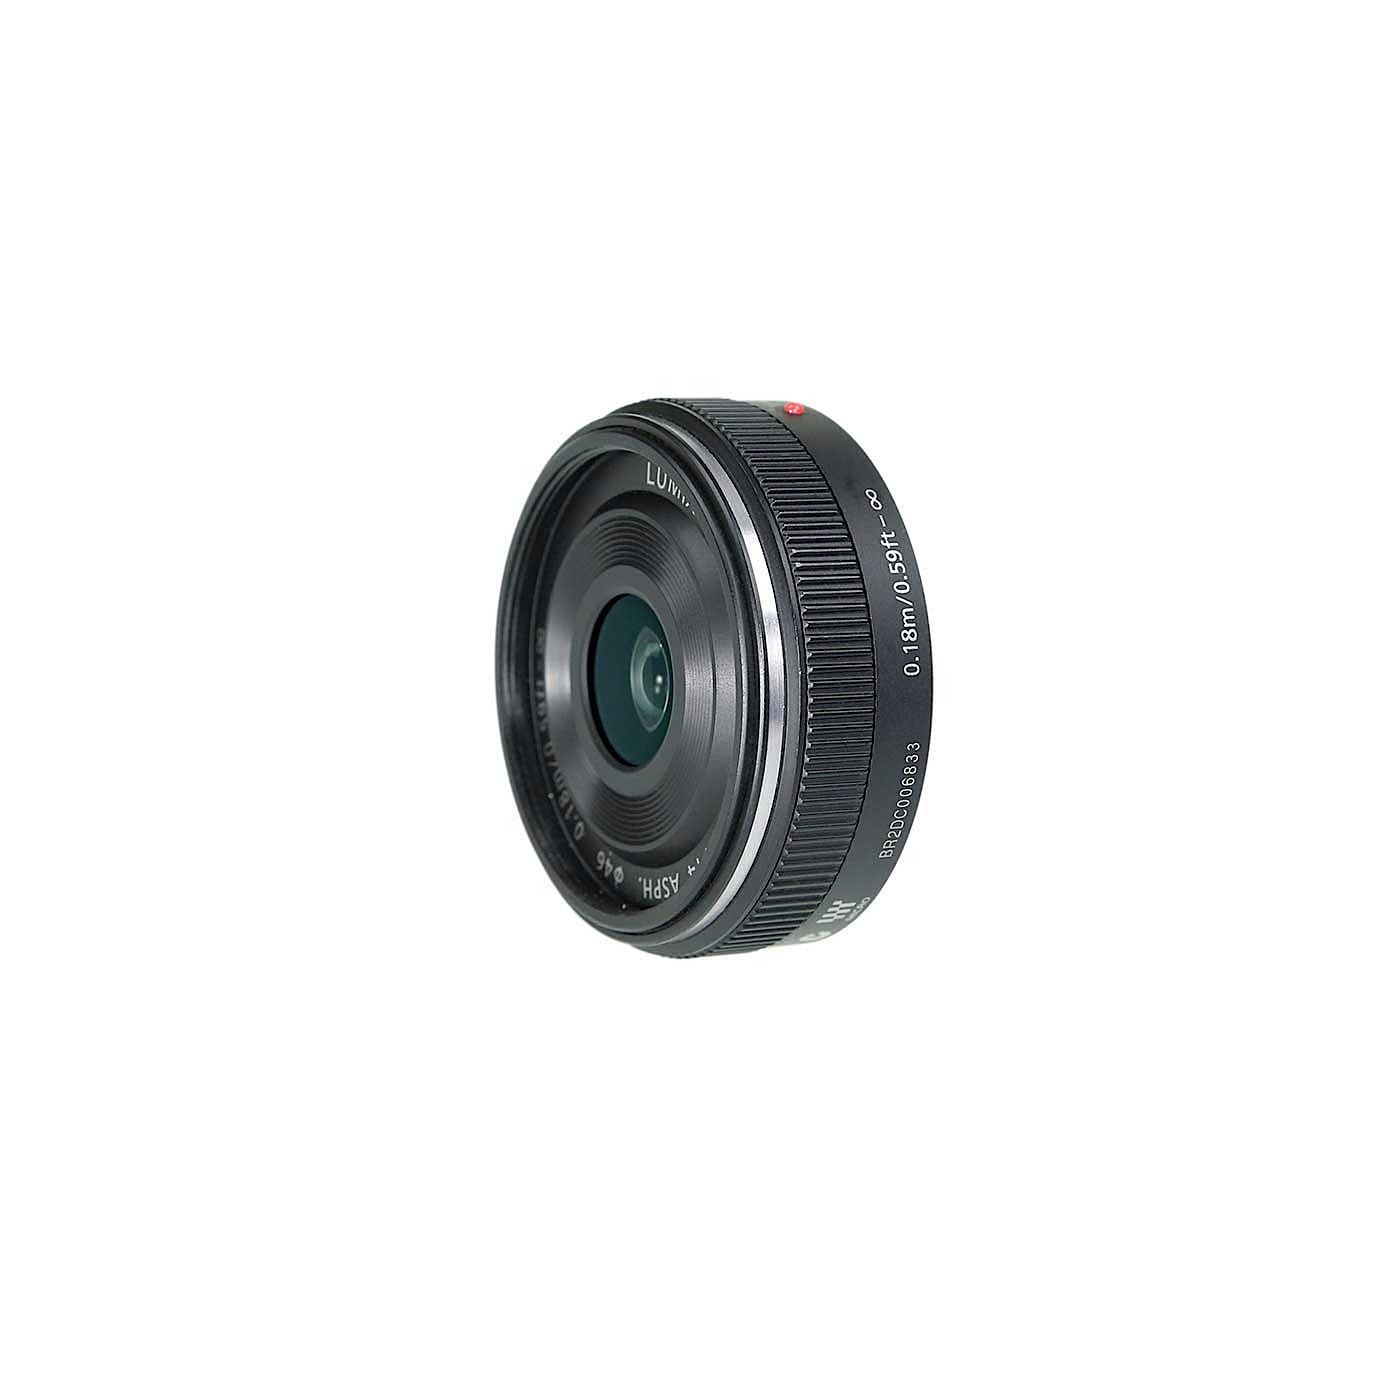 Panasonic 14mm Prime Lens